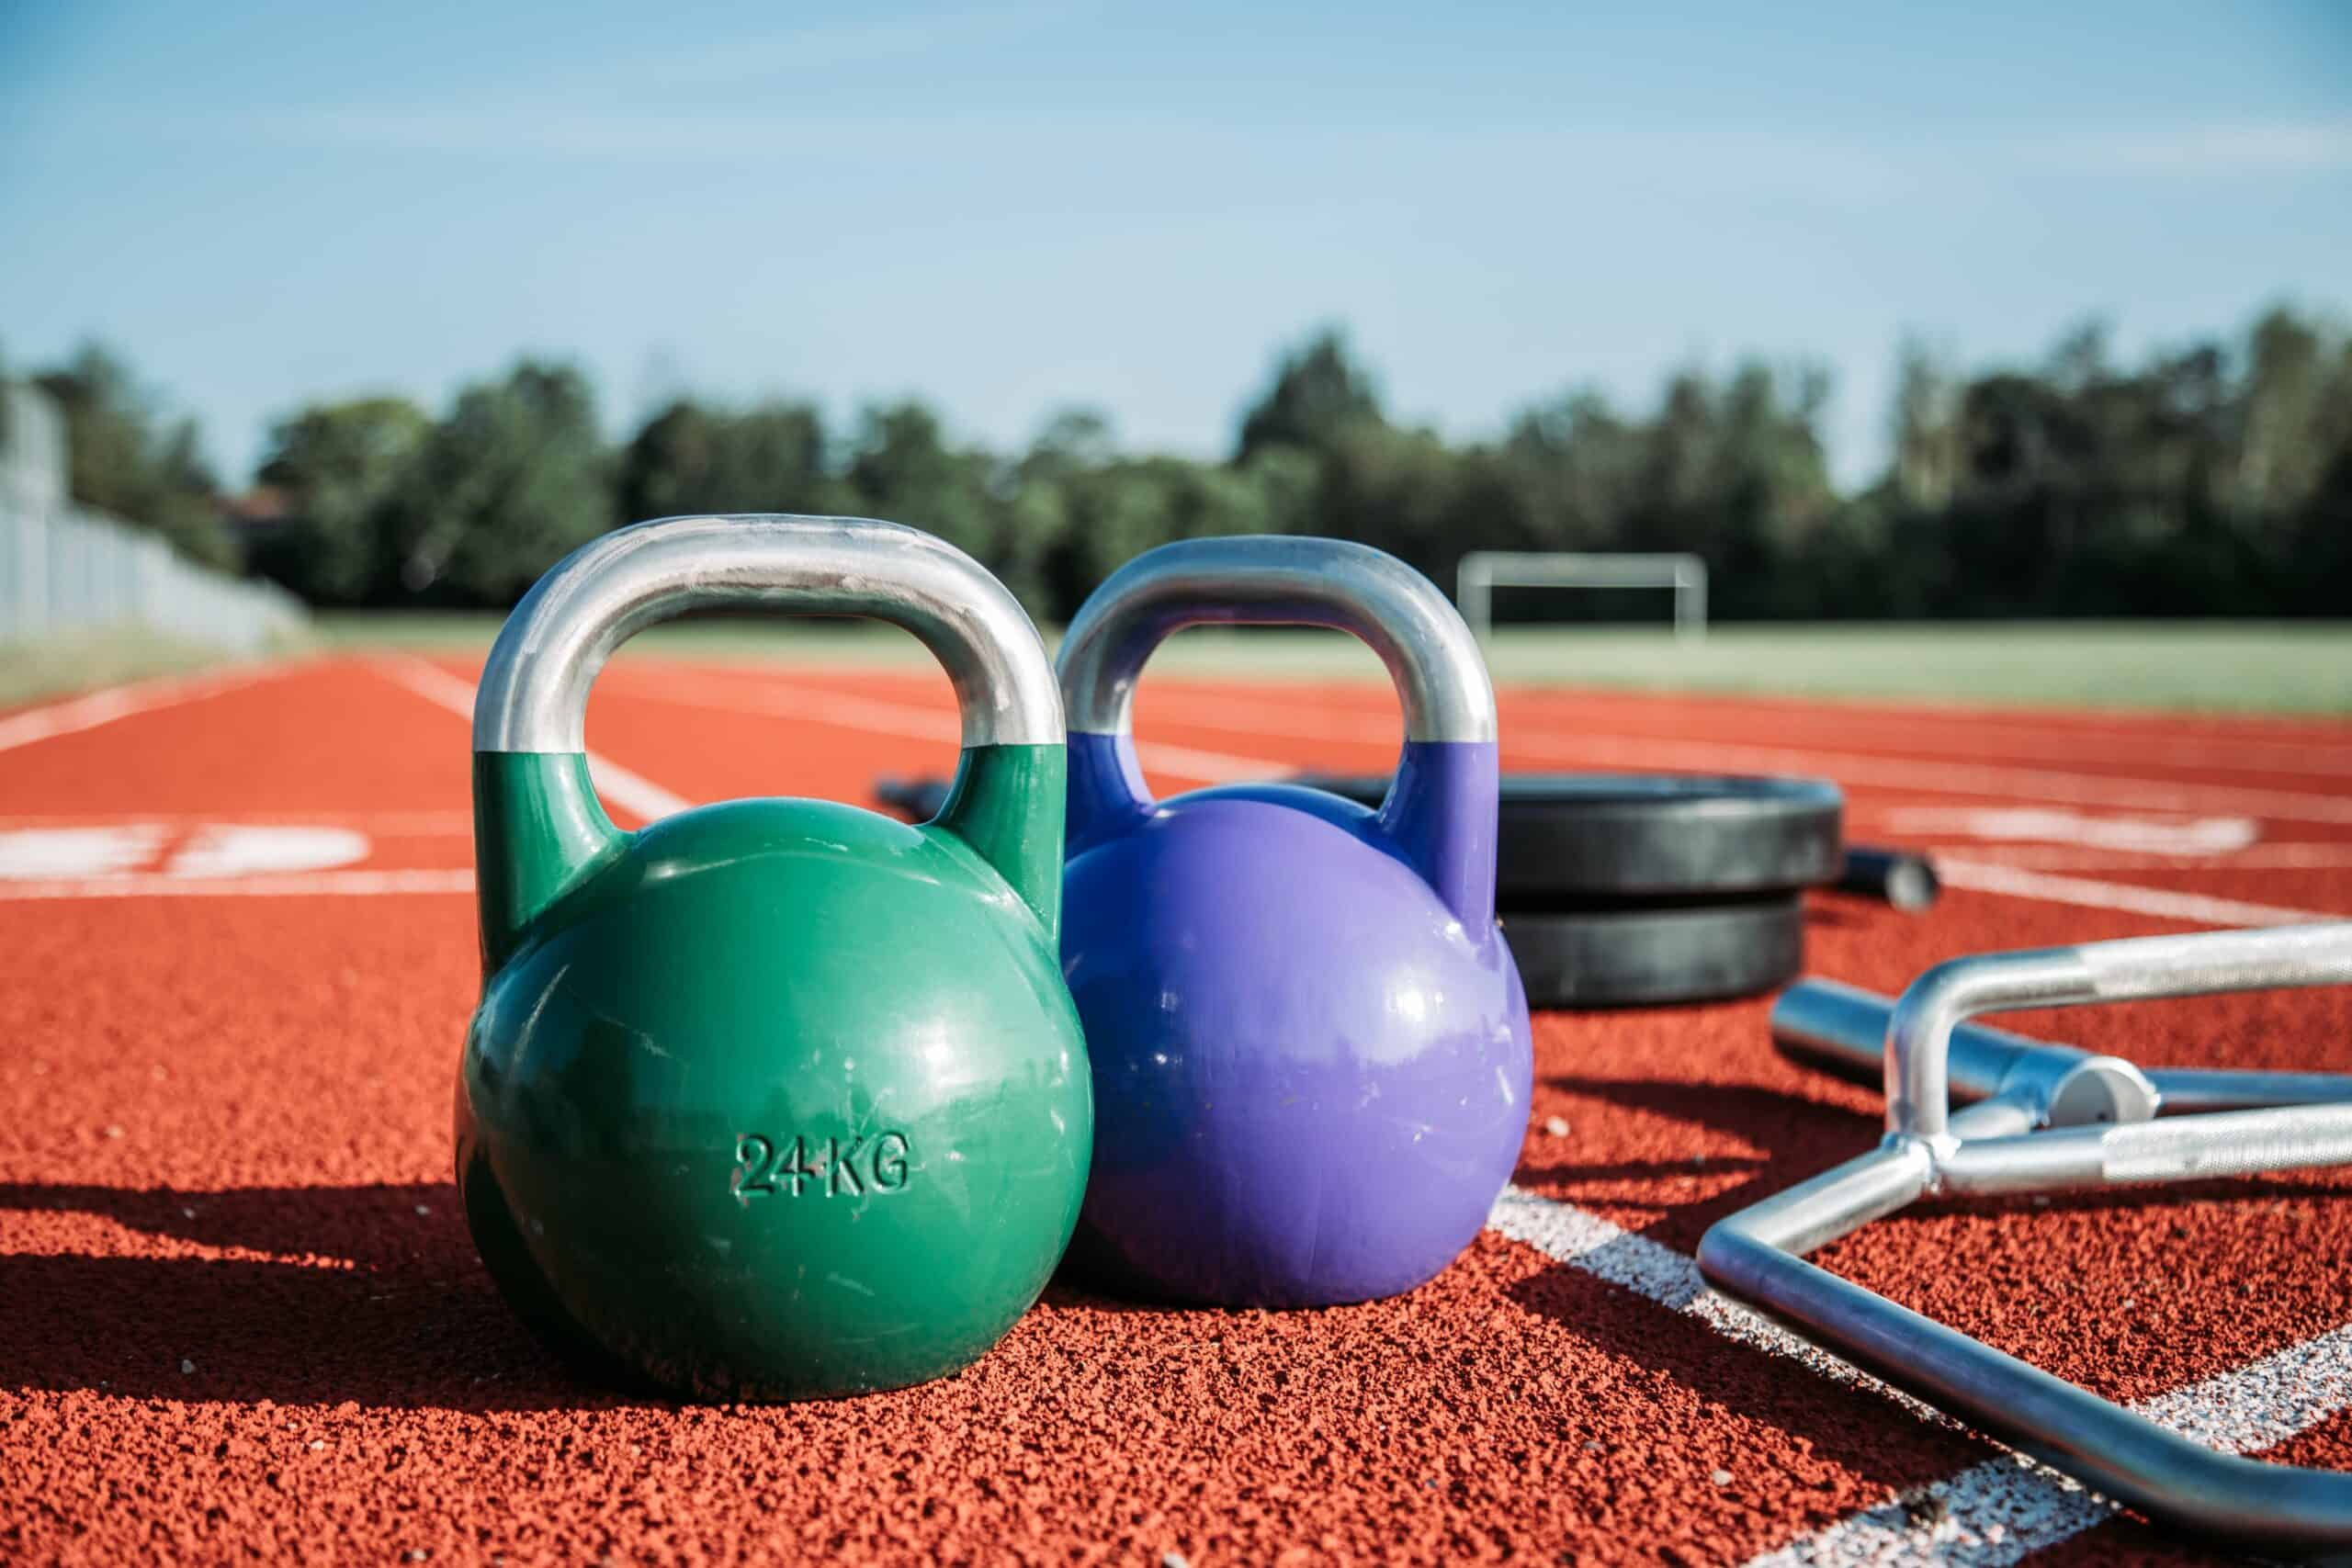 14 Best Kettlebells for Home Gym + Buying Guide